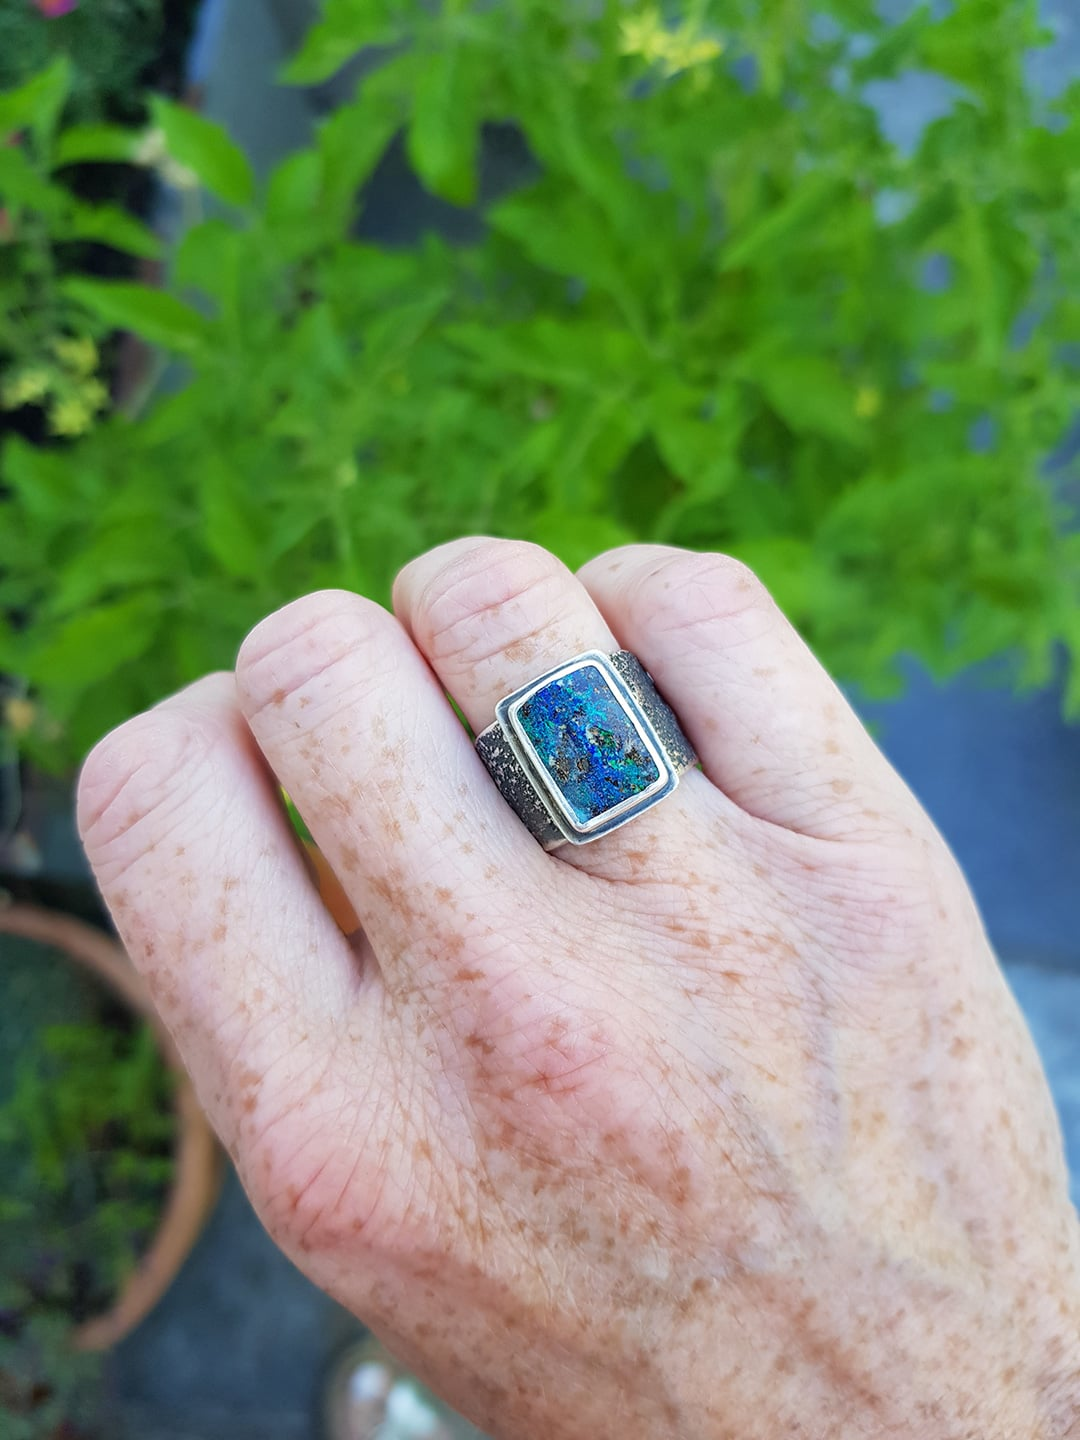 Boulder opal ring on finger and a bit of gardening